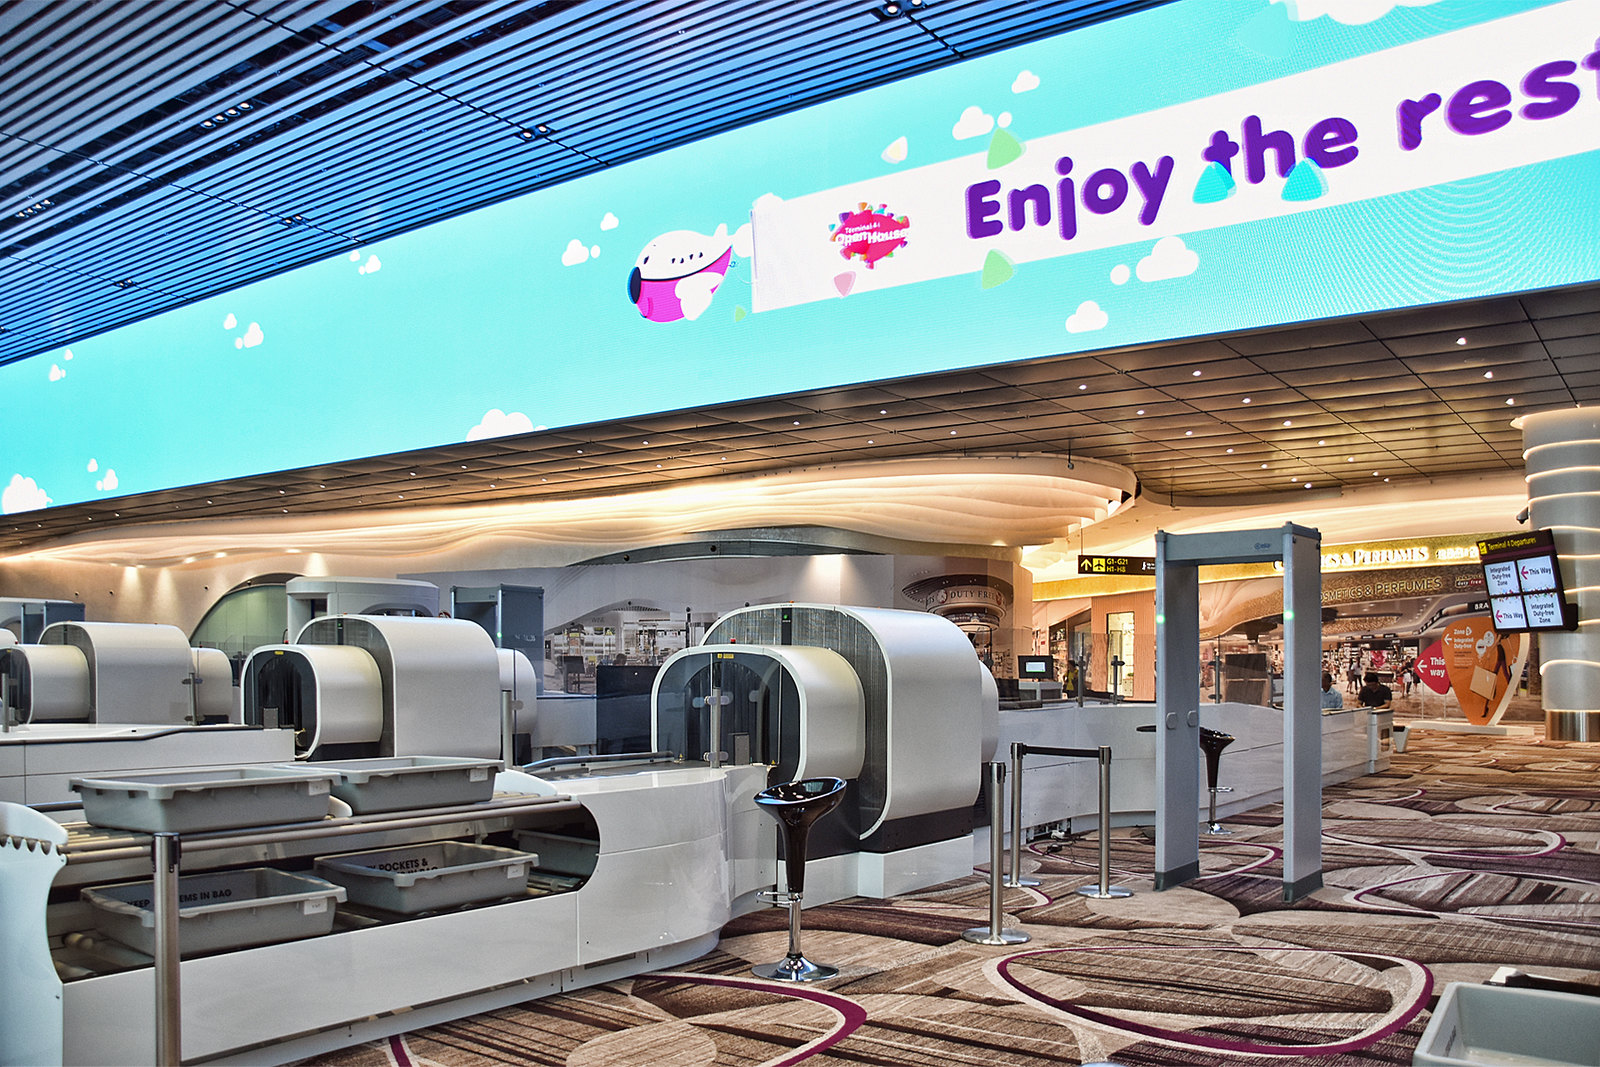 CT scanner at Changi Airport (Pic: Choo Yut Shing/Flickr)